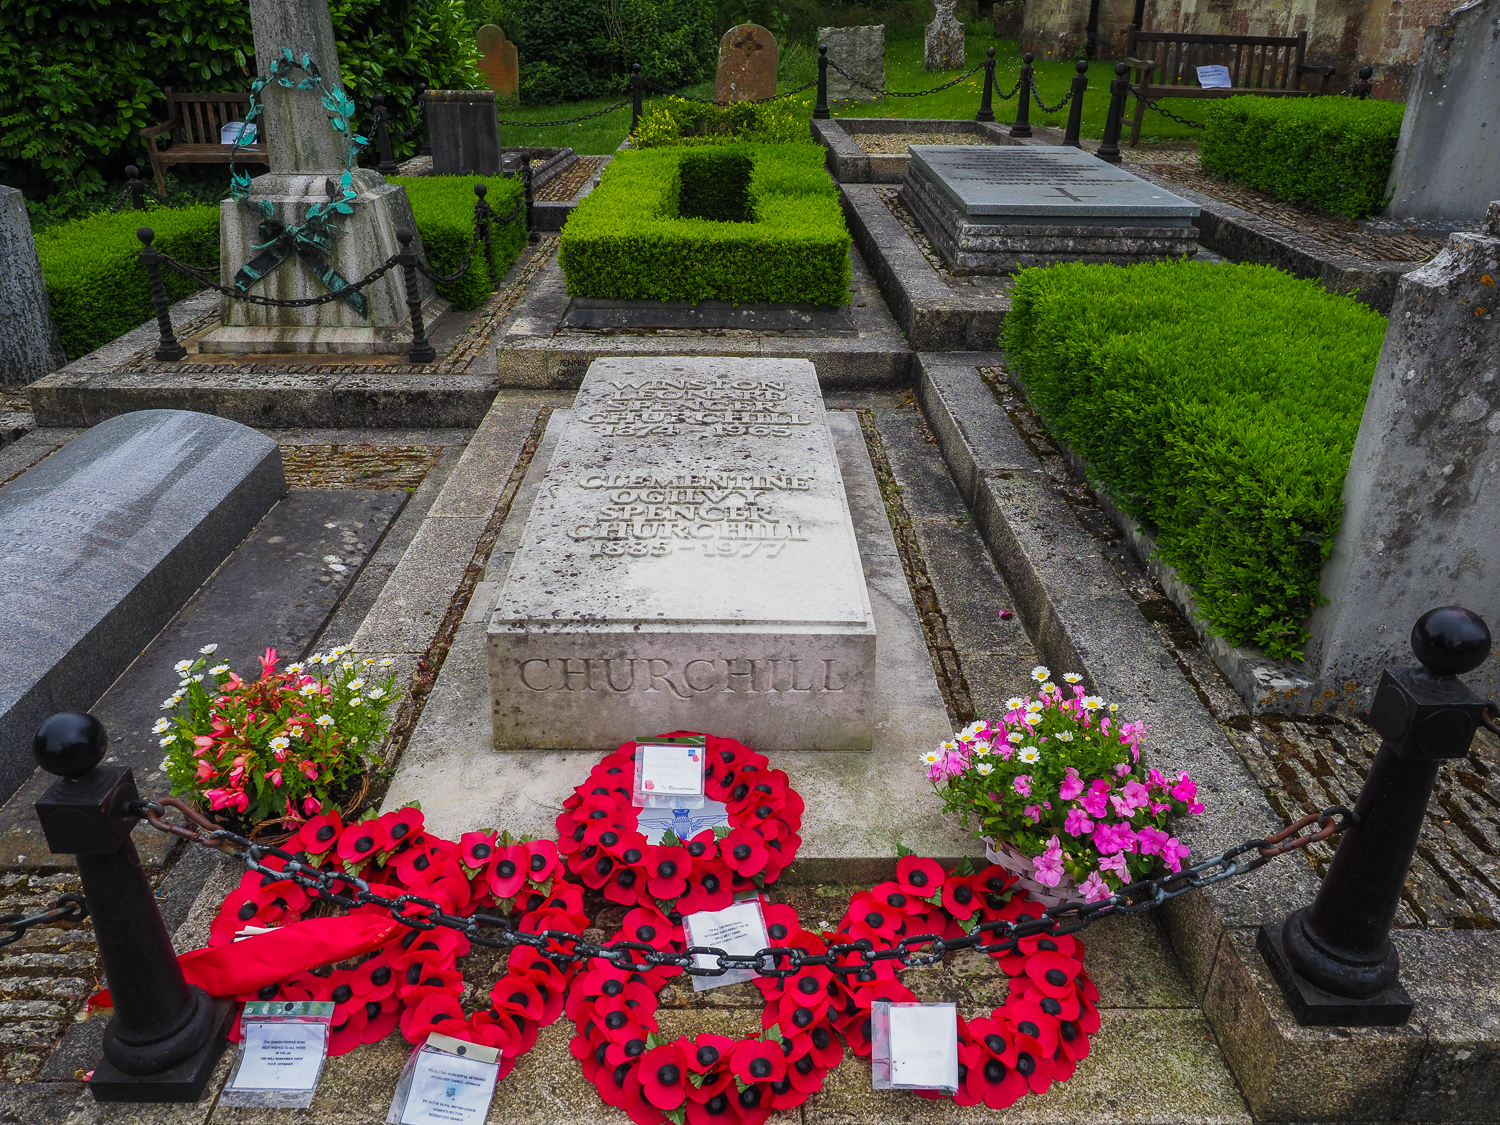 """Last resting place of Sir Winston Churchill (1876-1964)""""We shall defend our island, whatever the cost may be, we shall fight on the beaches, we shall fight on the landing grounds, we shall fight in the fields and in the streets, we shall fight in the hills; we shall never surrender."""""""